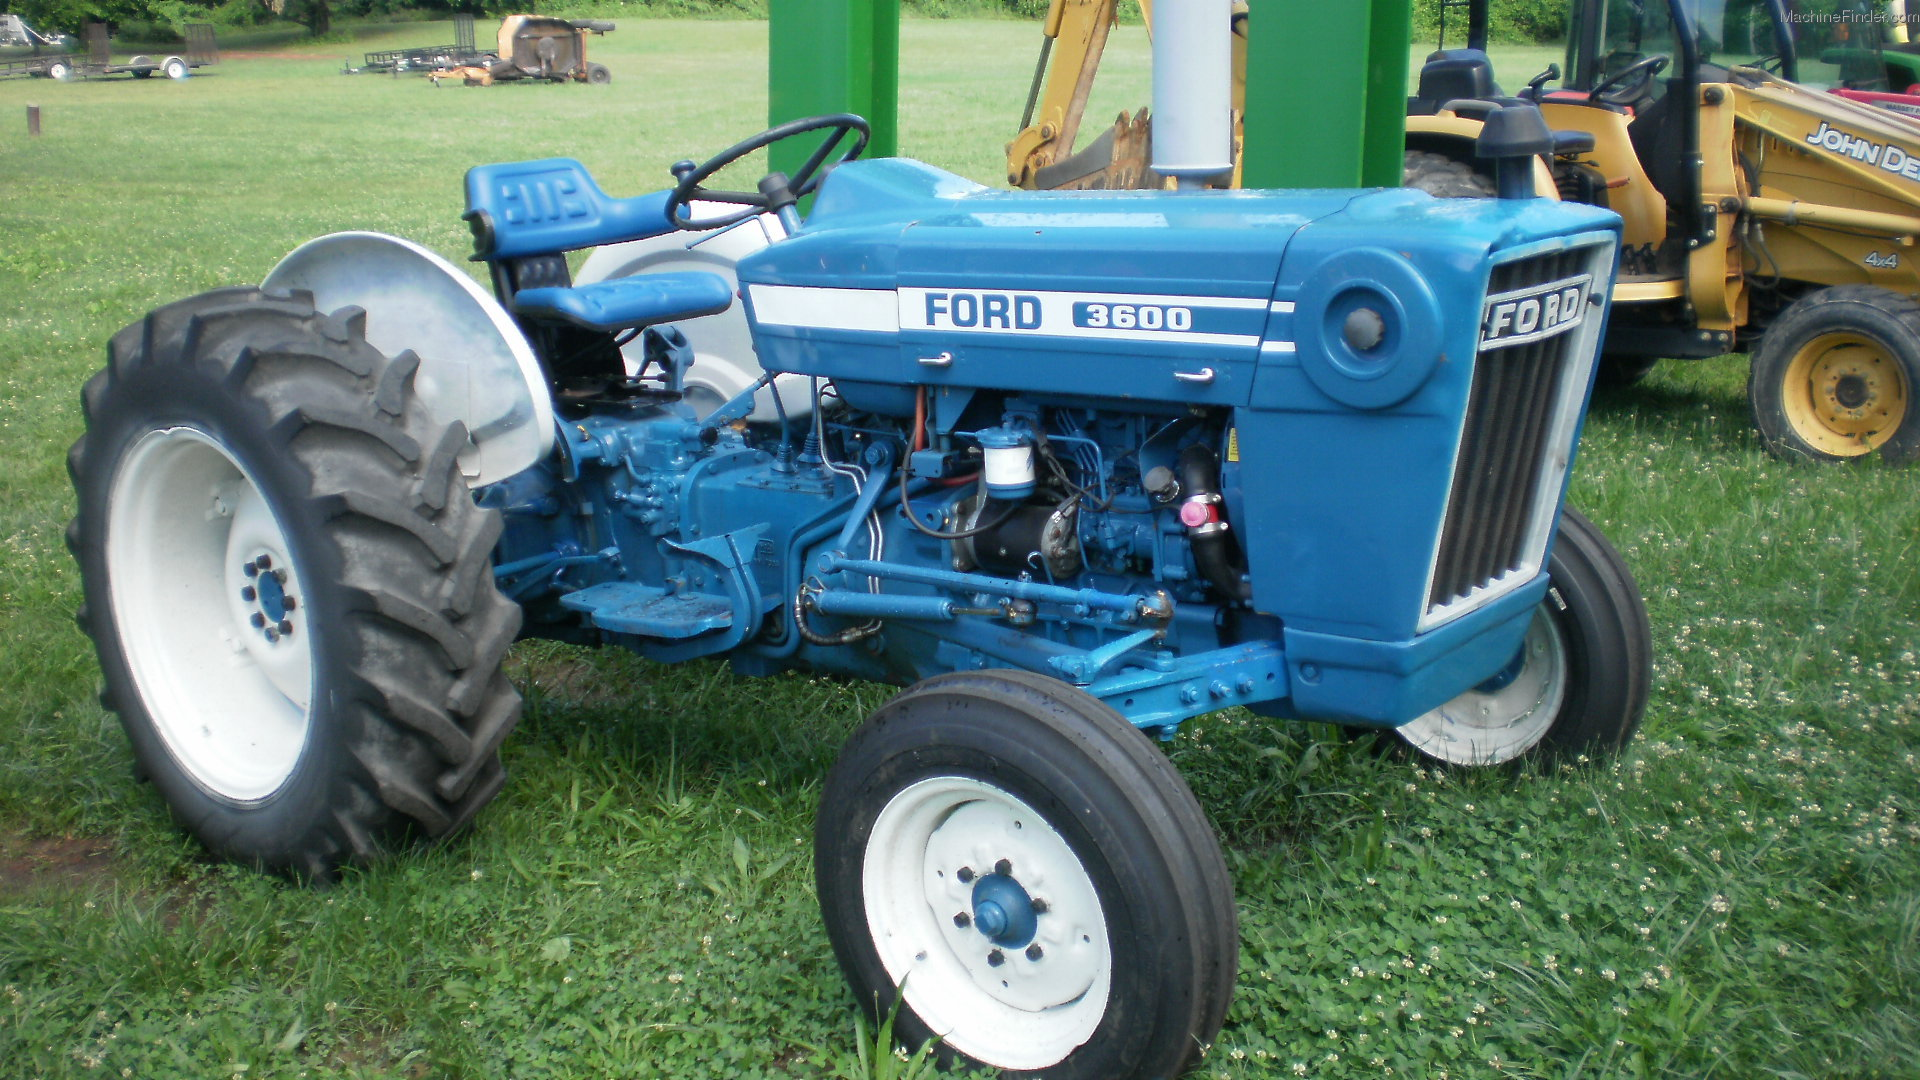 Ford 3600 Tractor : Ford tractors compact hp john deere